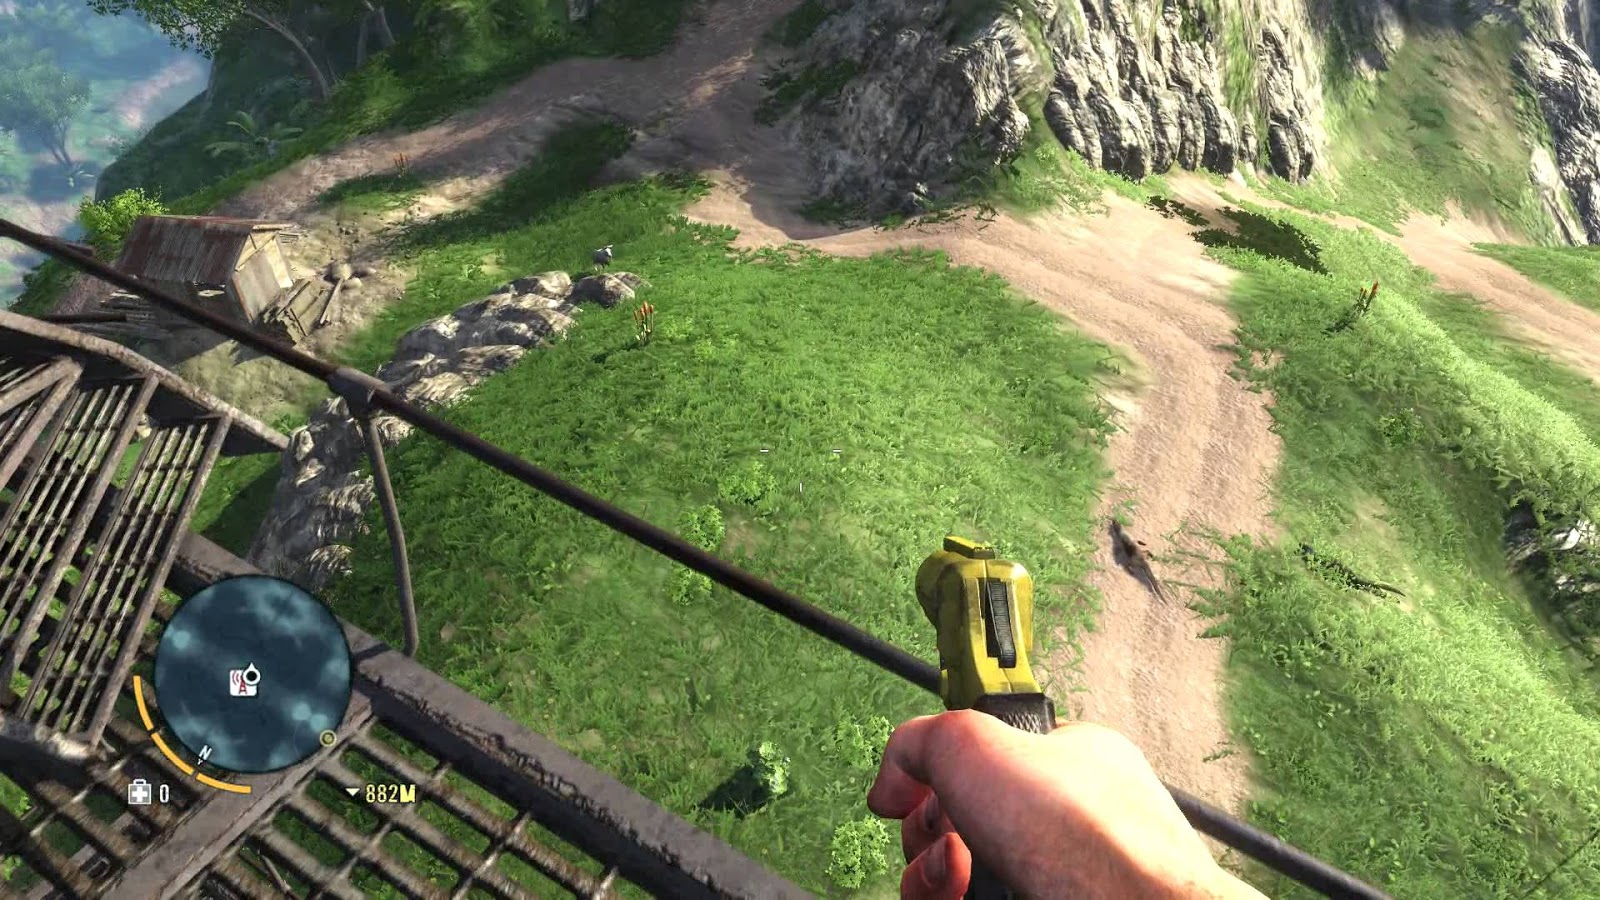 far cry 3 pc download Archives